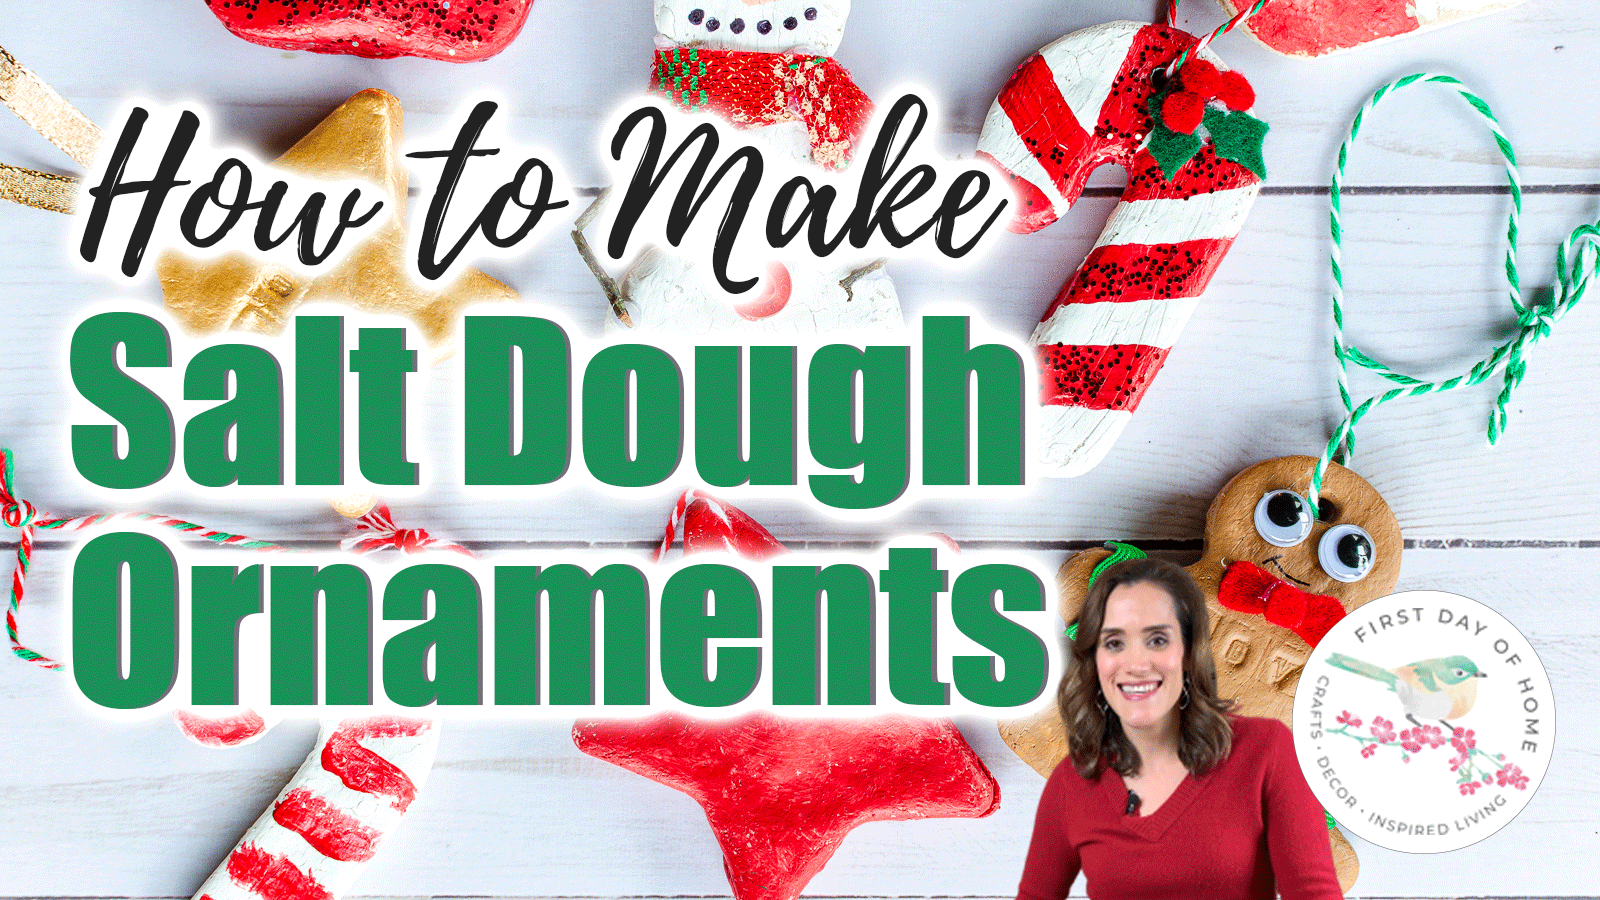 """Video thumbnail with salt dough ornaments and text overlay reading """"How to Make Salt Dough Ornaments"""""""